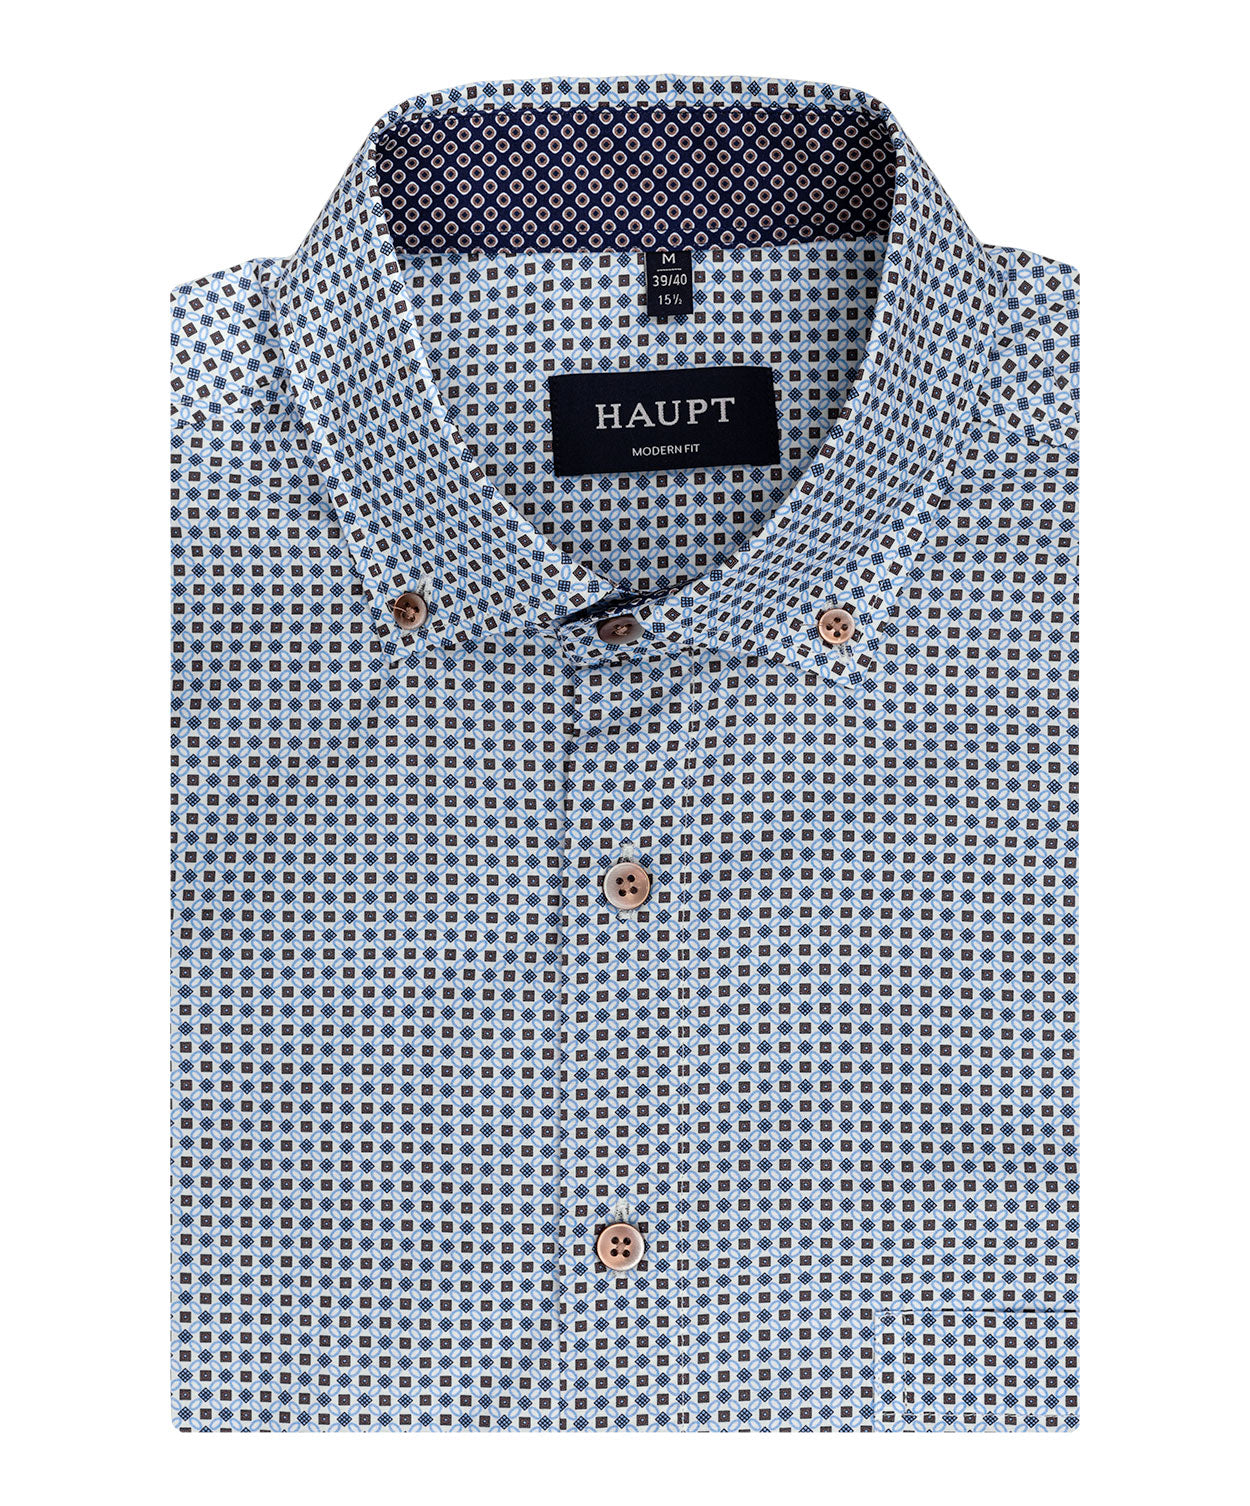 Tabacco/Navy/White Square/Diamond Pattern Sport Shirt